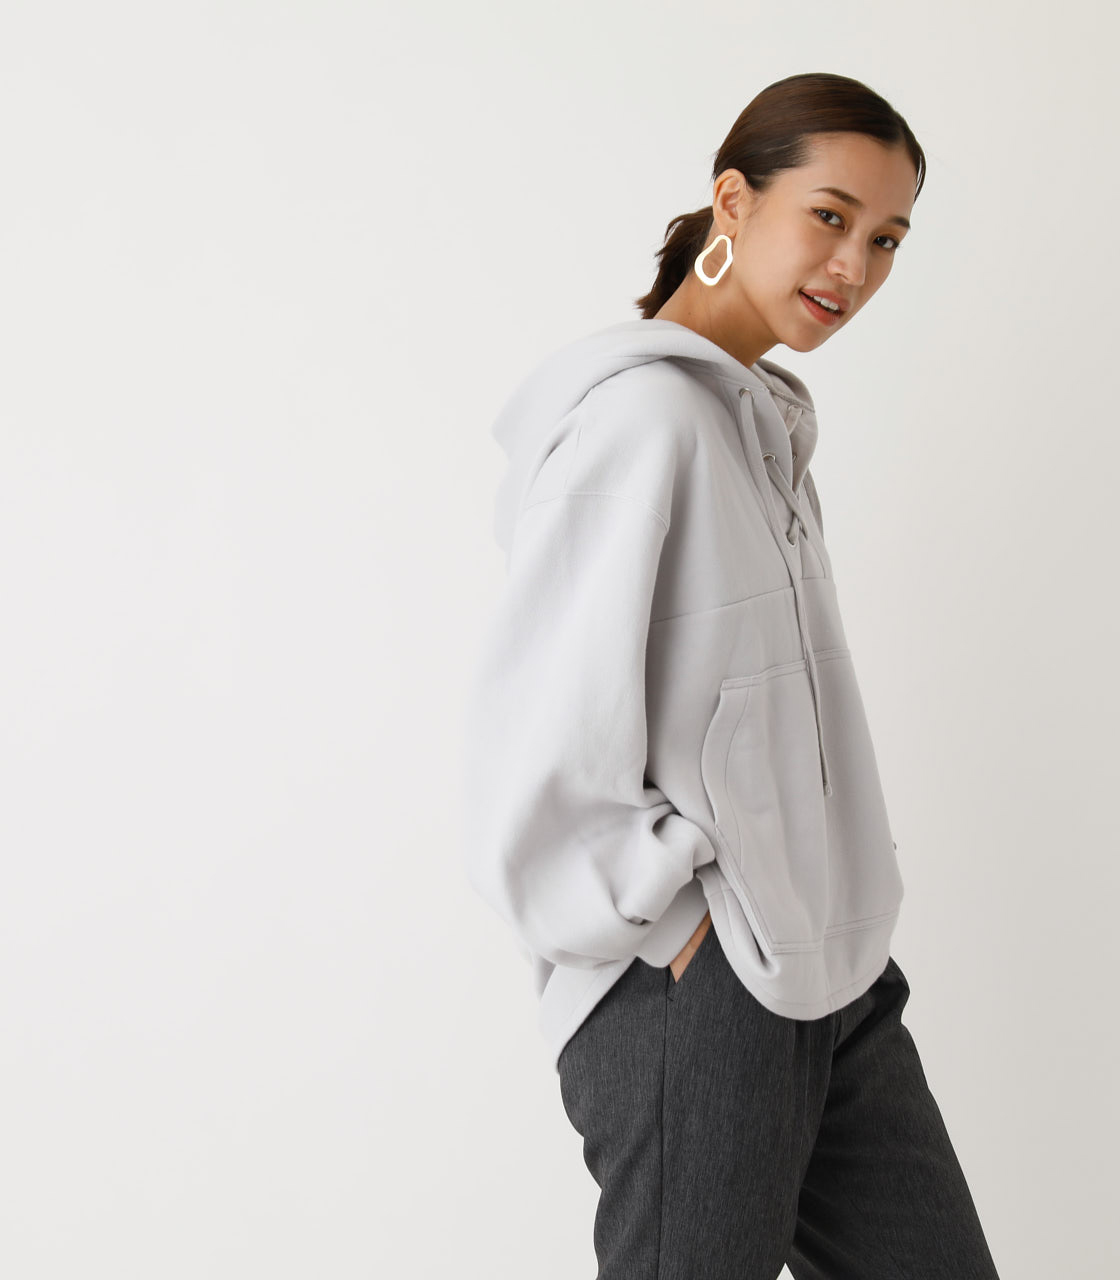 LACE-UP LOOSE HOODIE/レースアップルーズフーディ 詳細画像 L/GRY 2